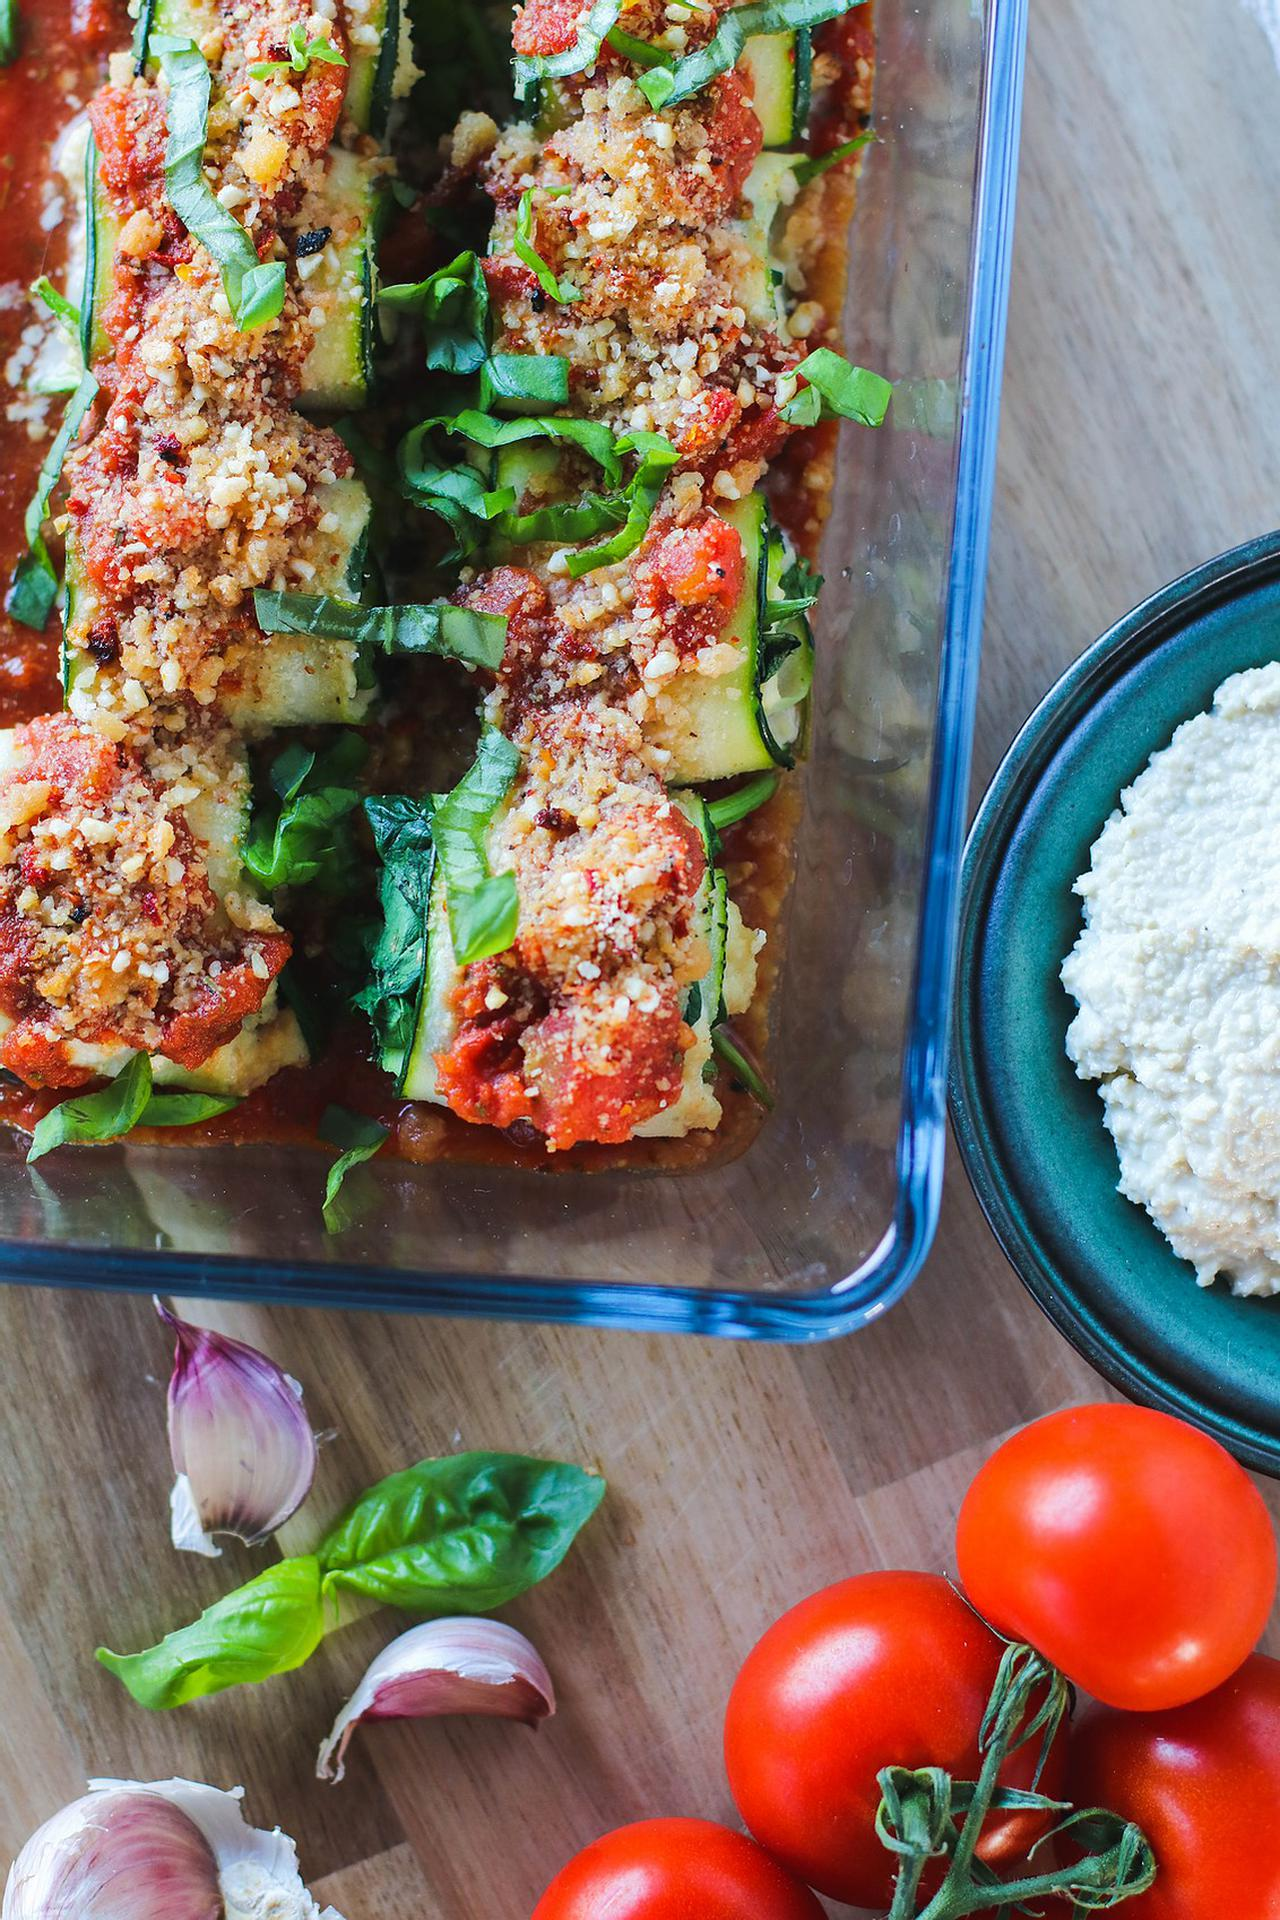 Main image of Zucchini Rolls with Vegan Ricotta Cheese